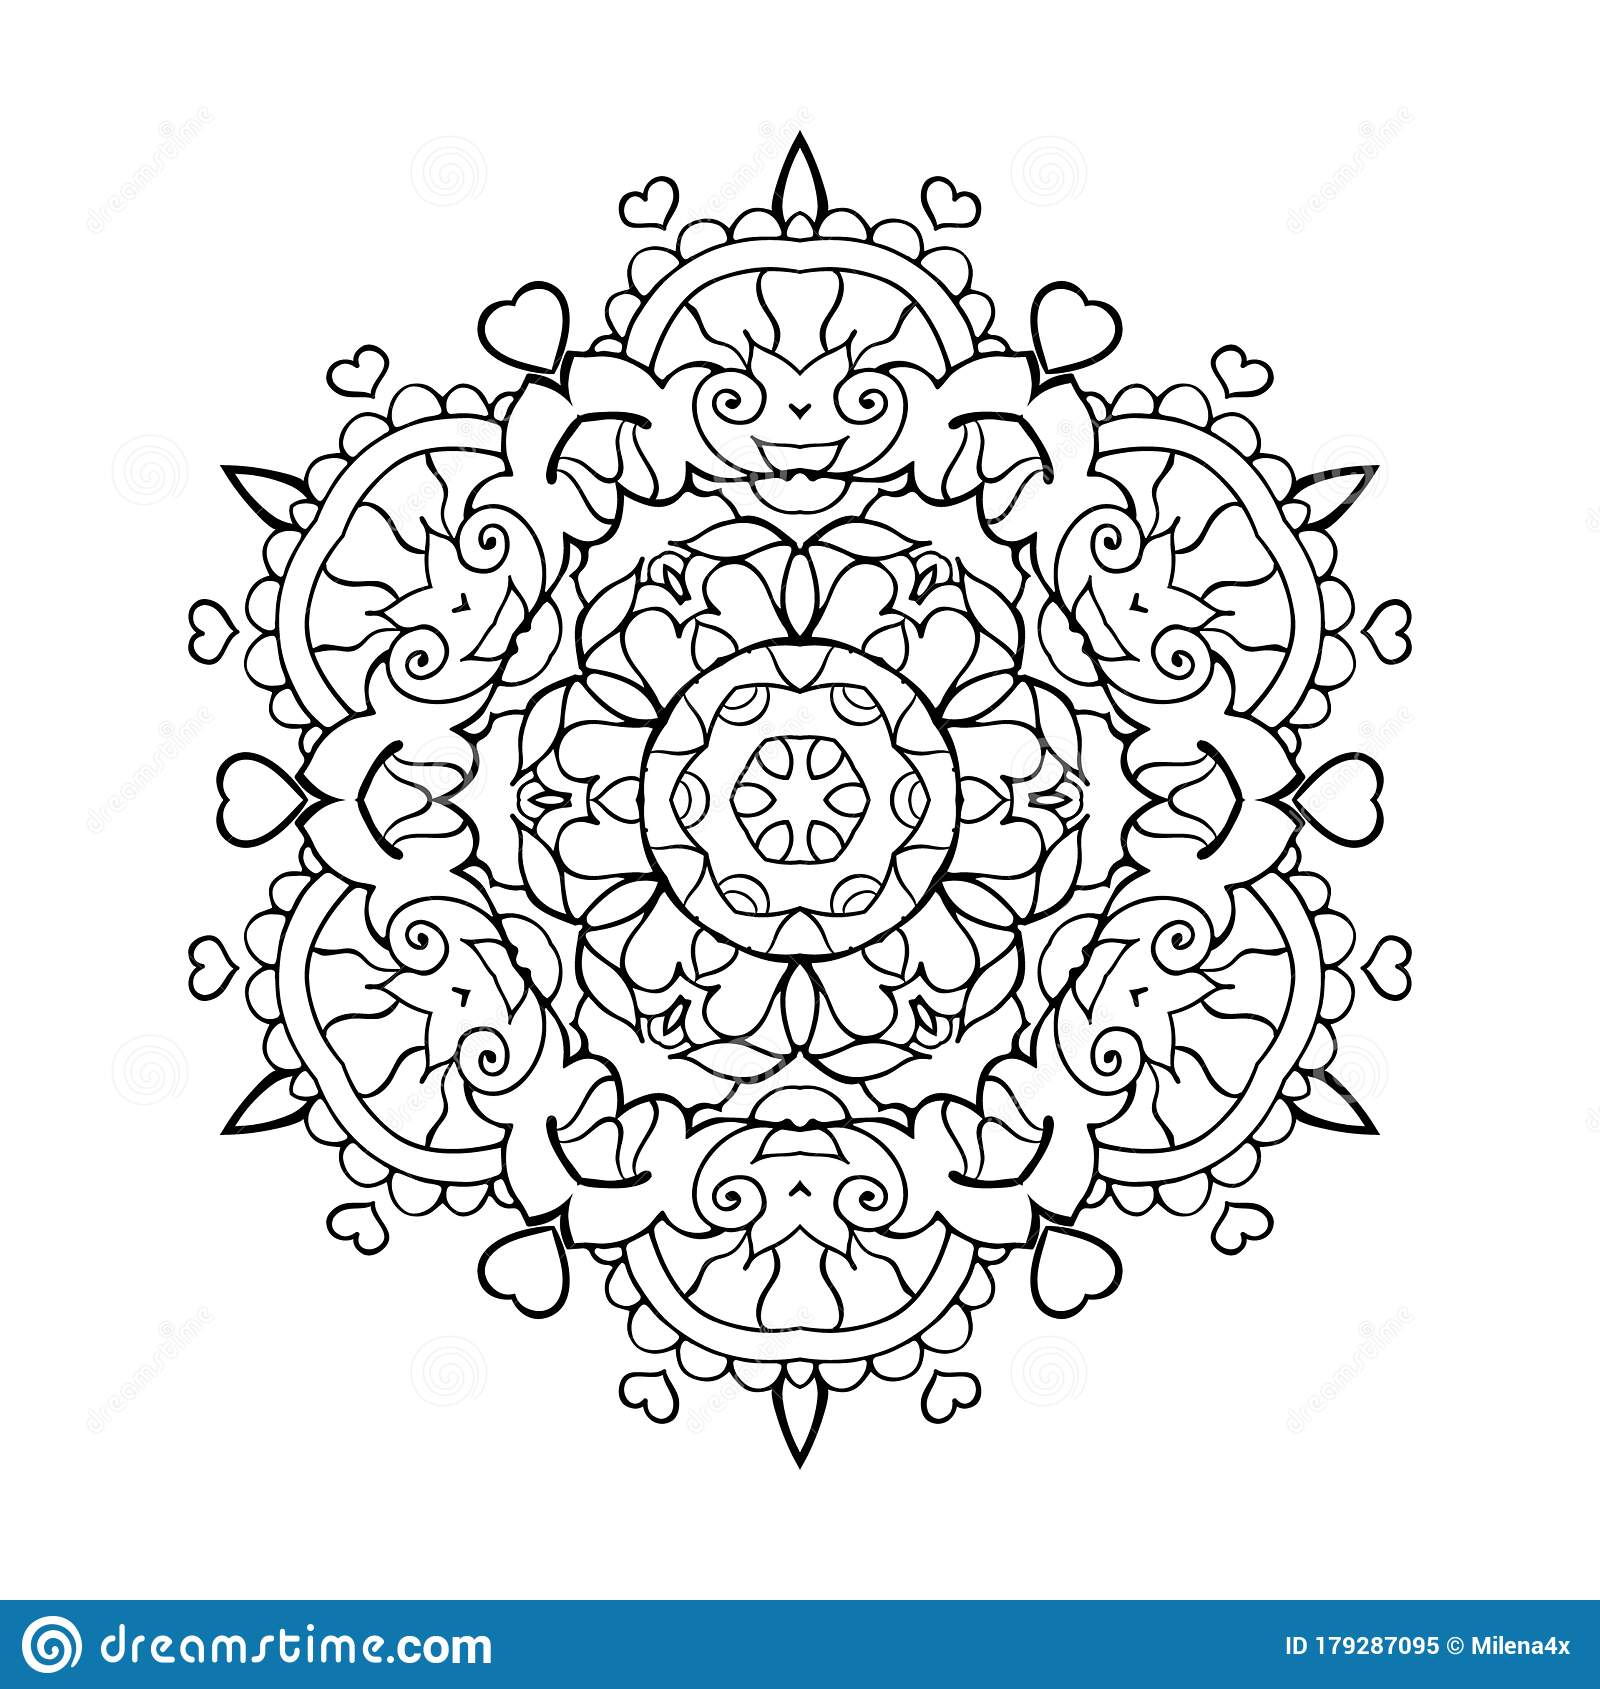 Valentines Day Coloring Pages for Adults - Best Coloring Pages For ...   1689x1600